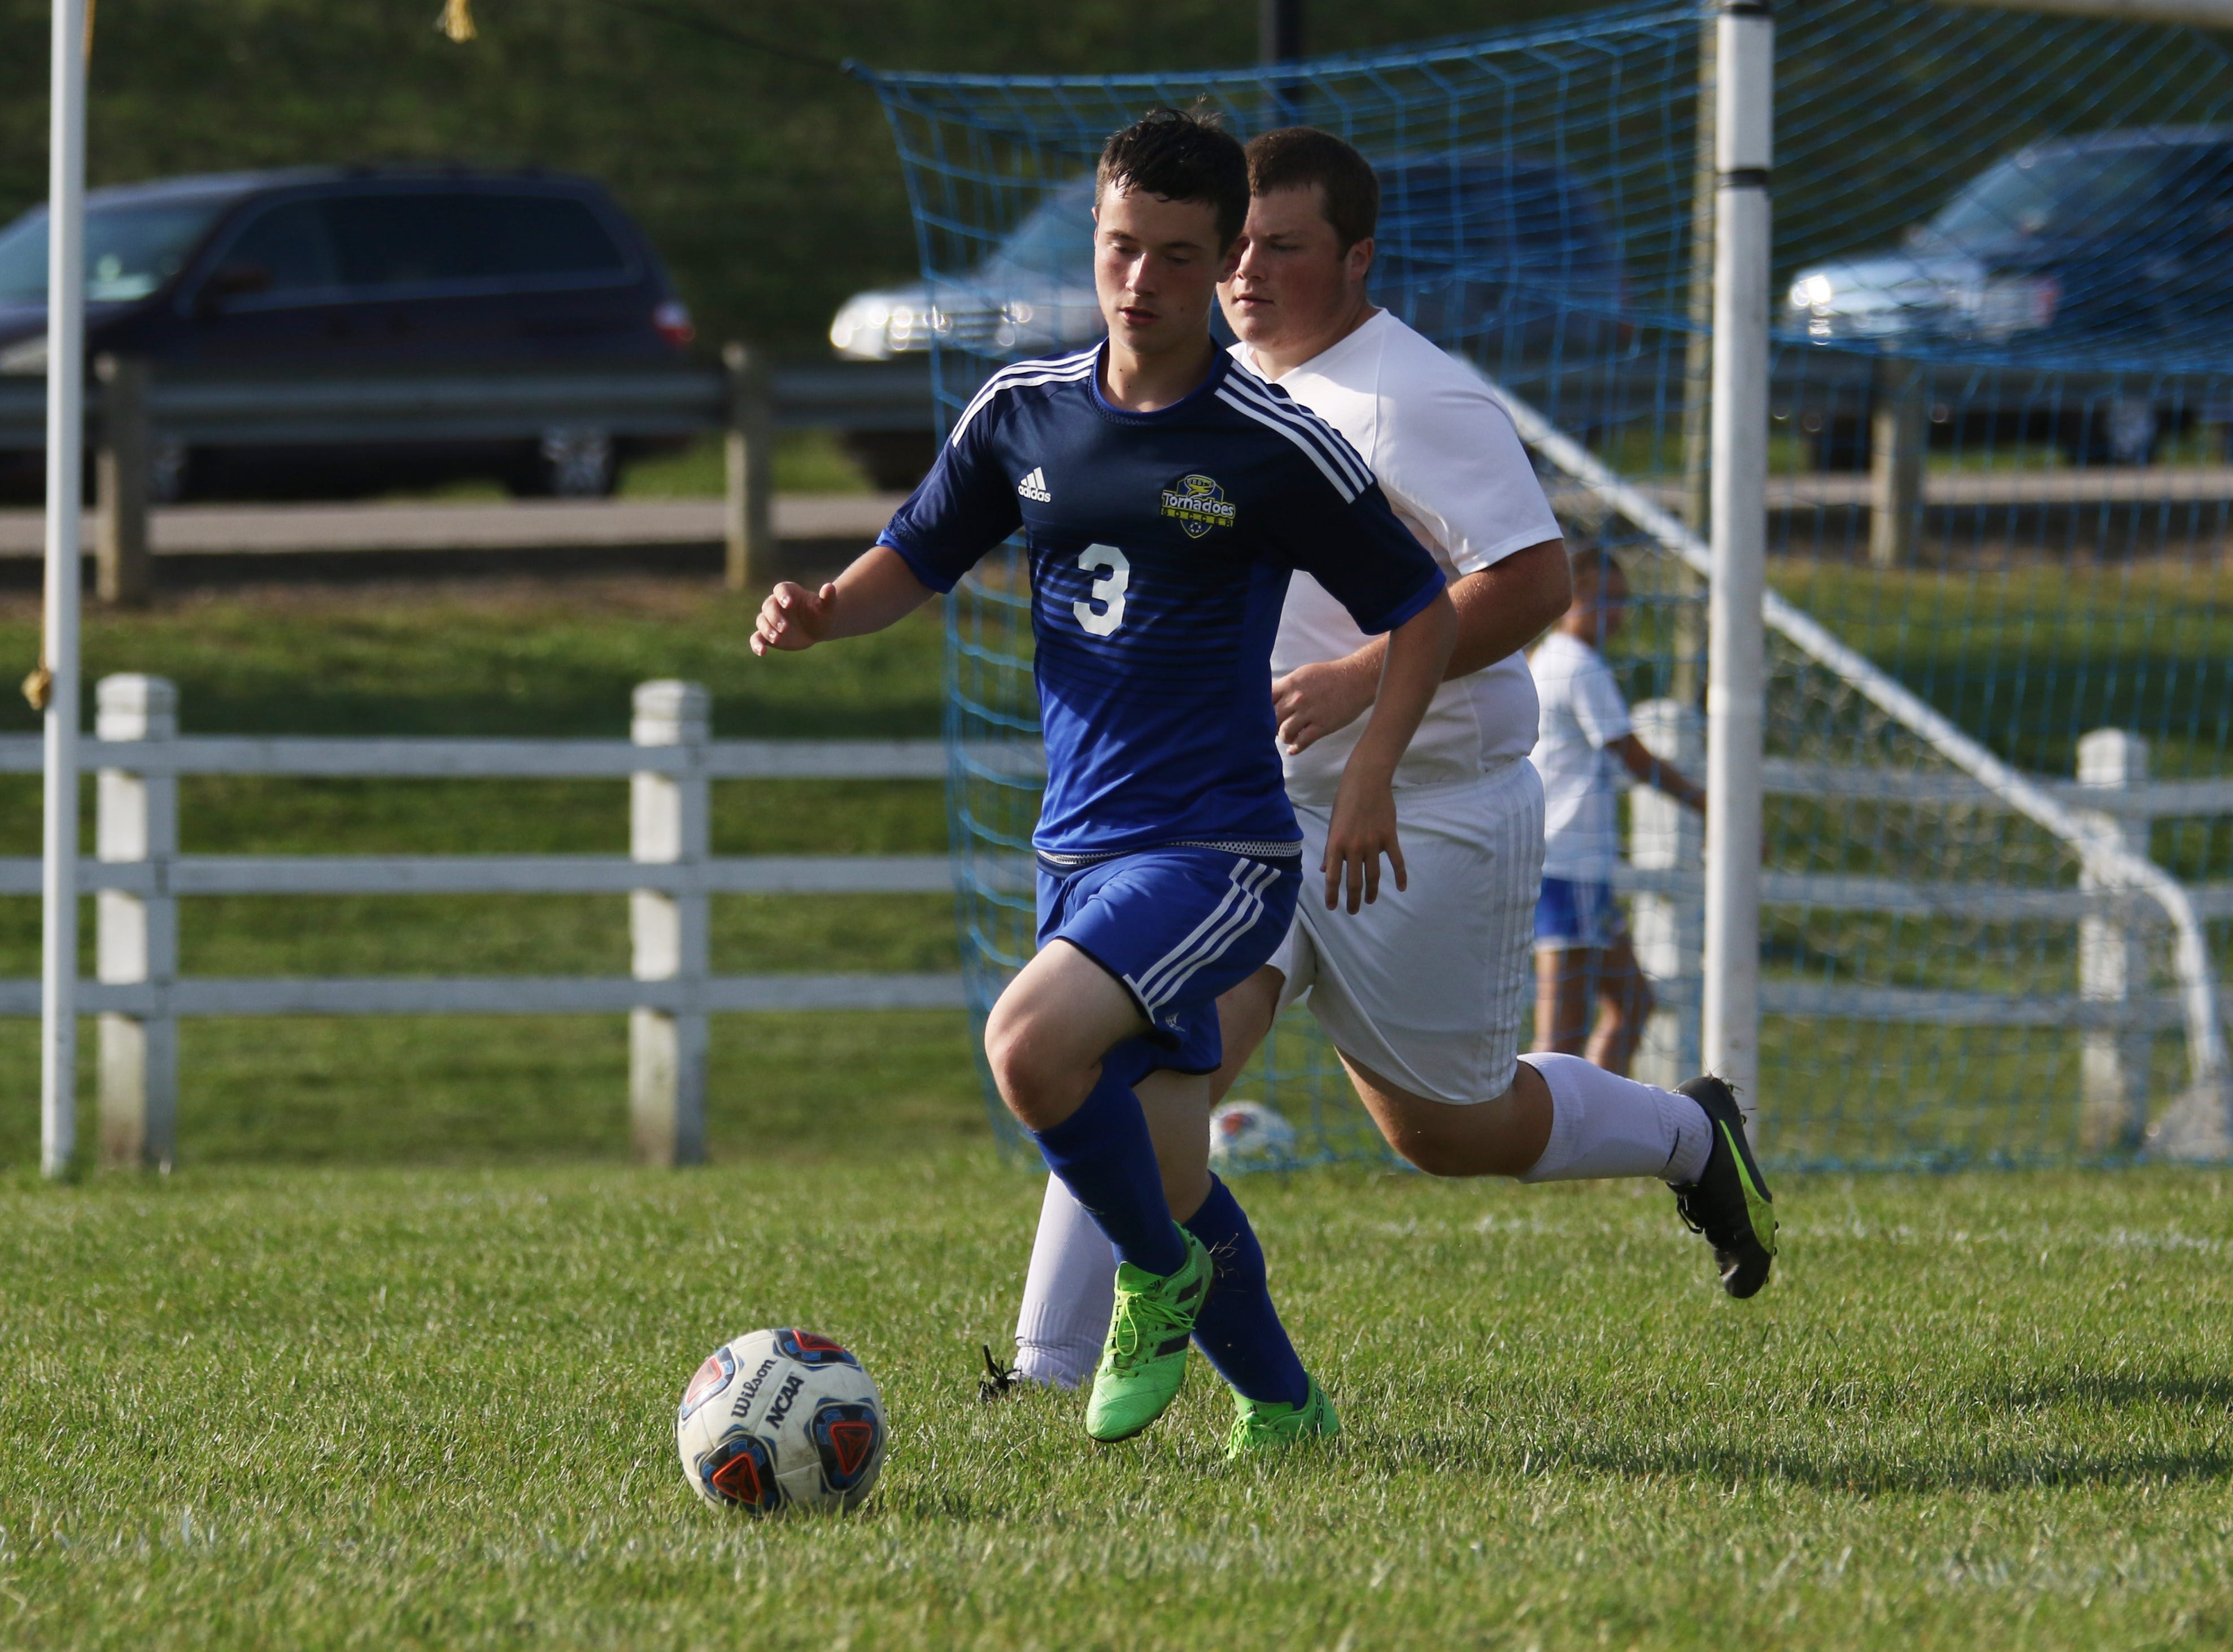 West Muskingum's Brandon Latier moves with the ball against Sheridan.